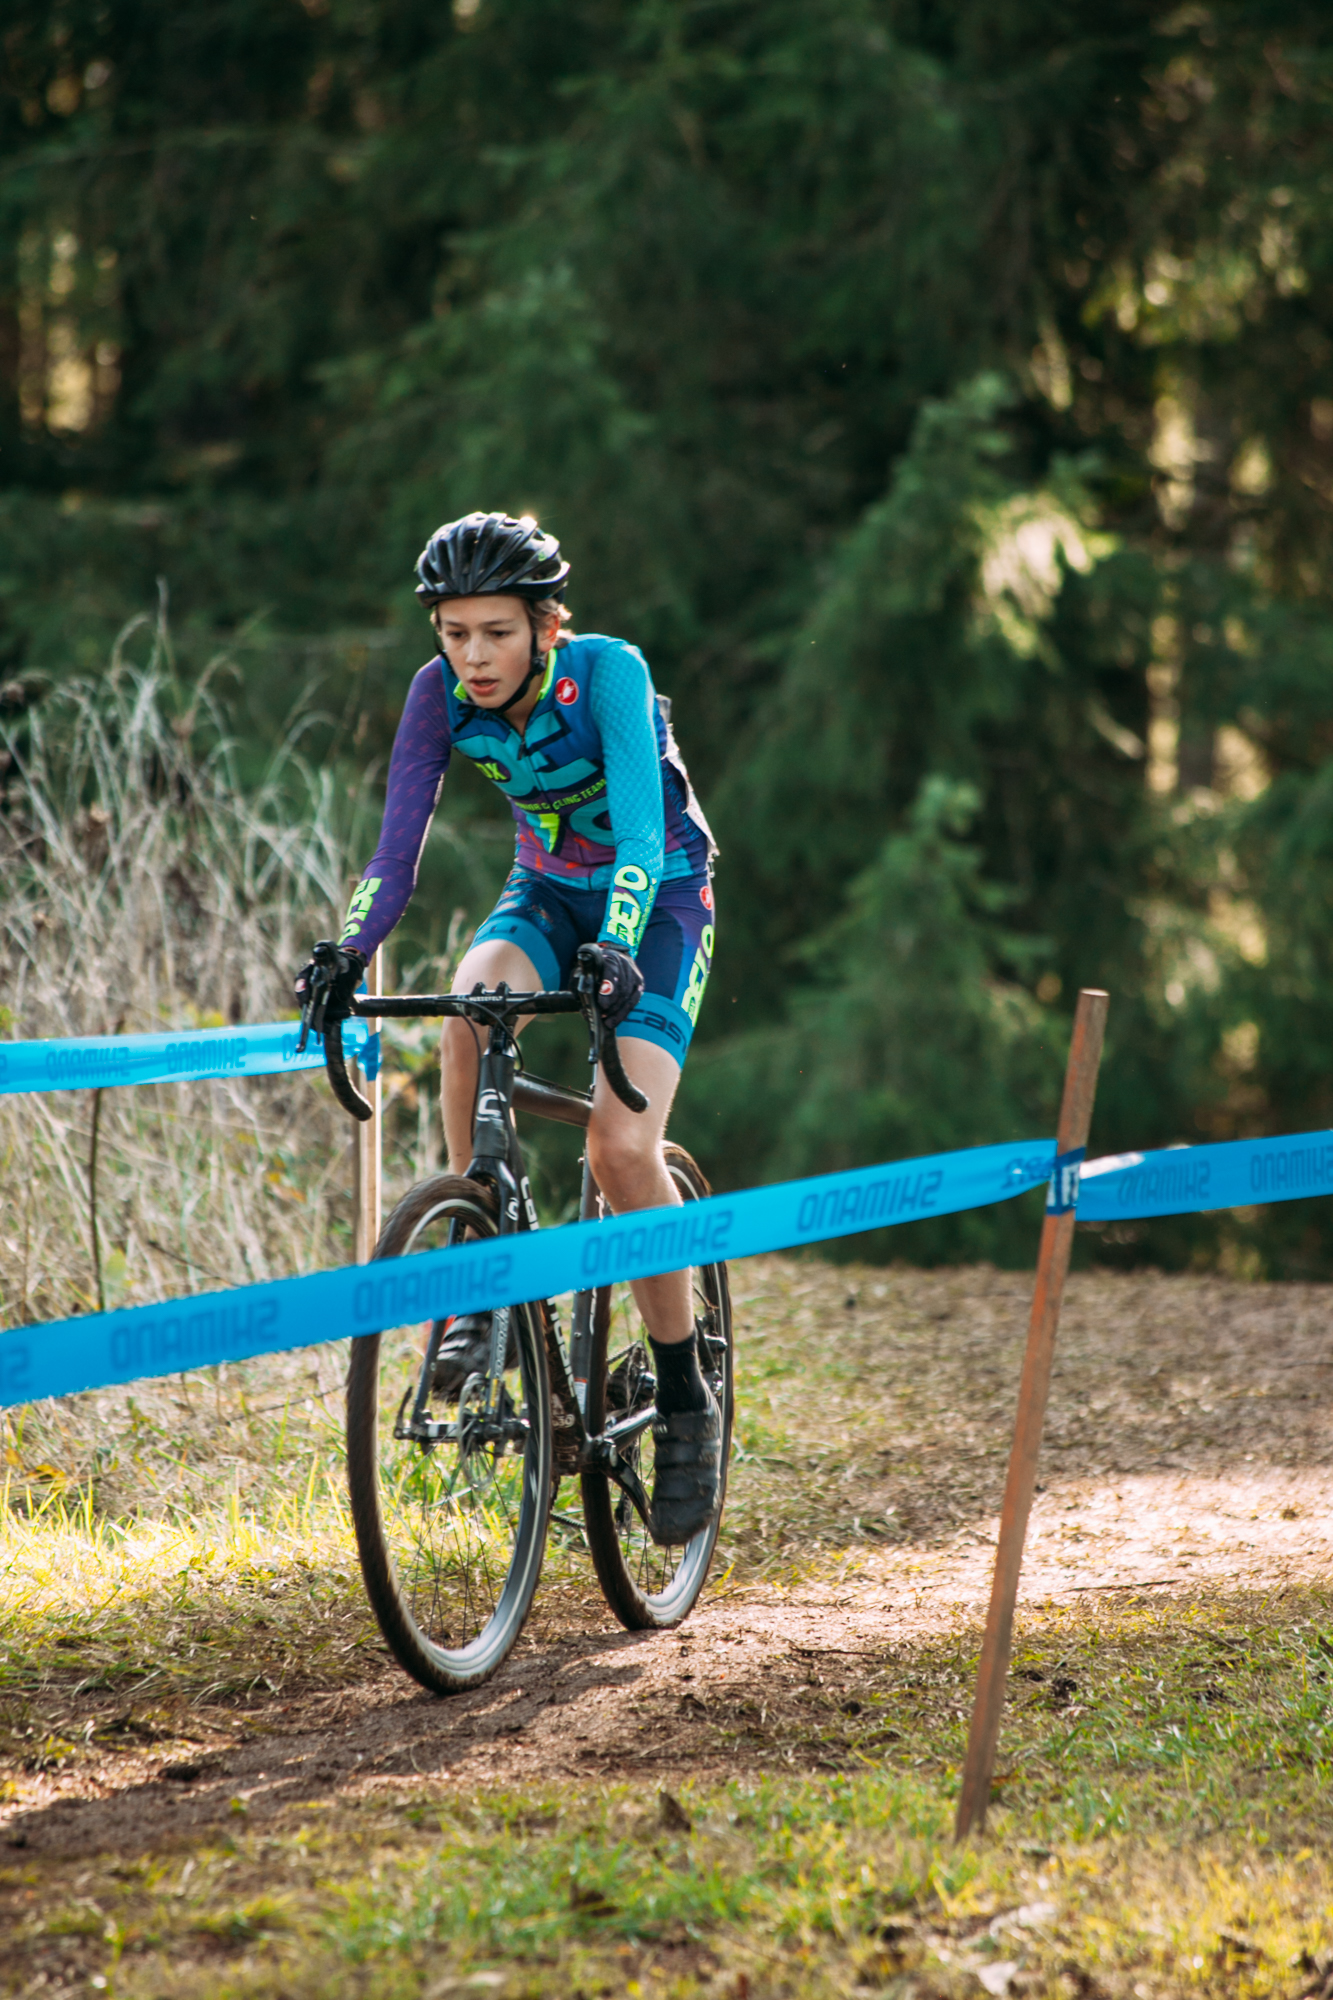 Cyclocross18_CCCX_RainierHS-160-mettlecycling.jpg